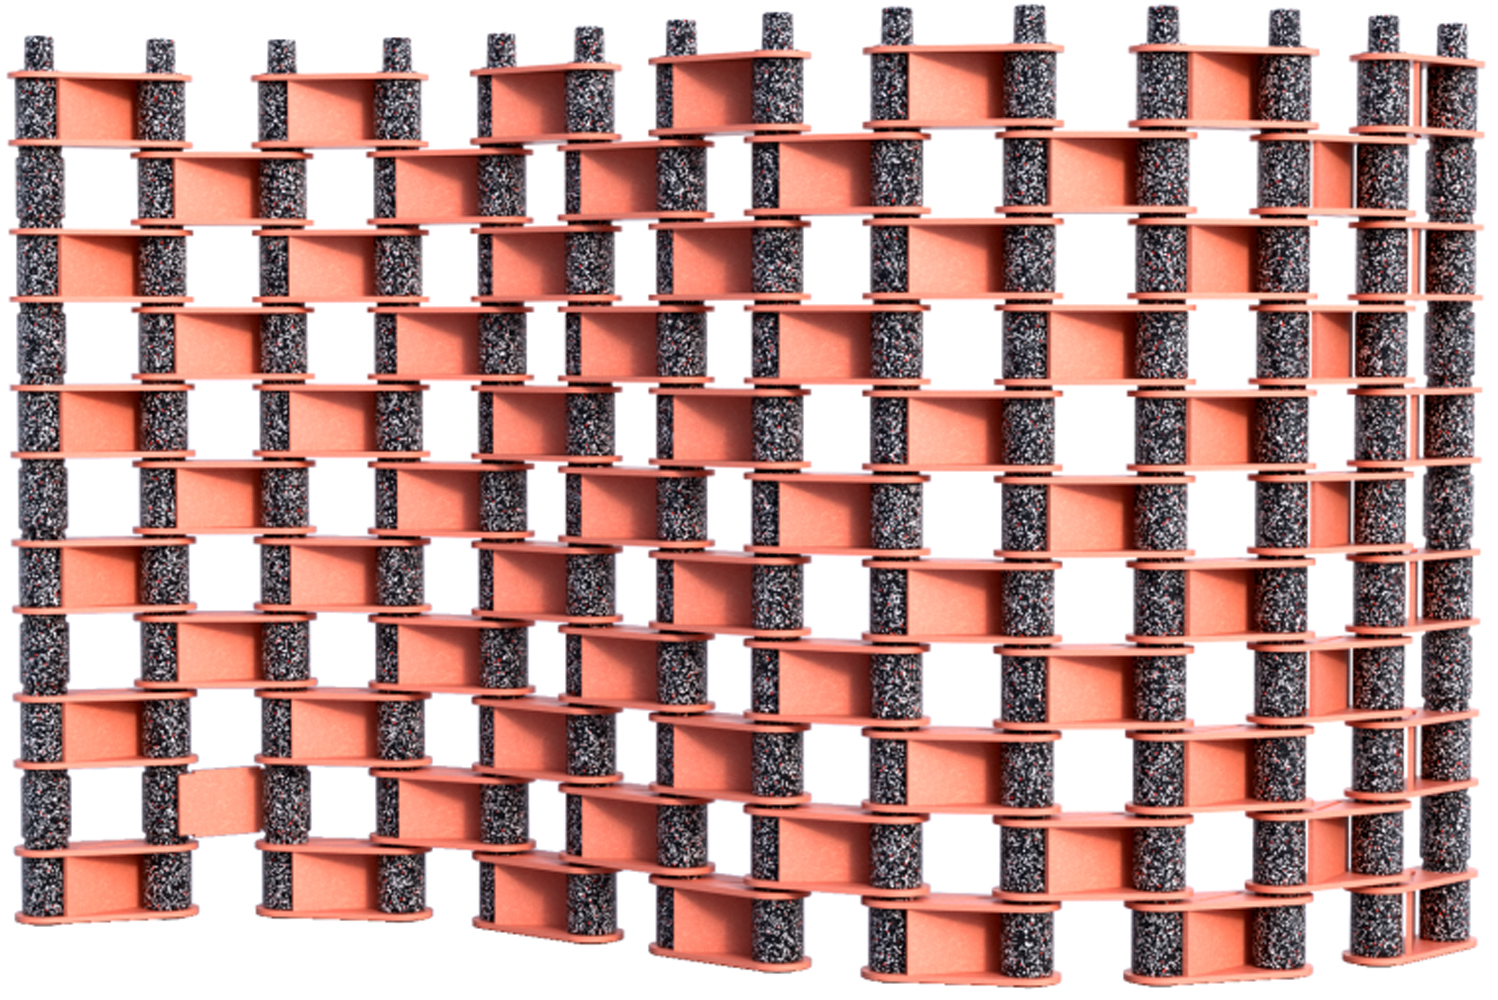 Recycled acoustic material links the multi-colored pins for an infinitely scalable and fully customizable modular system.